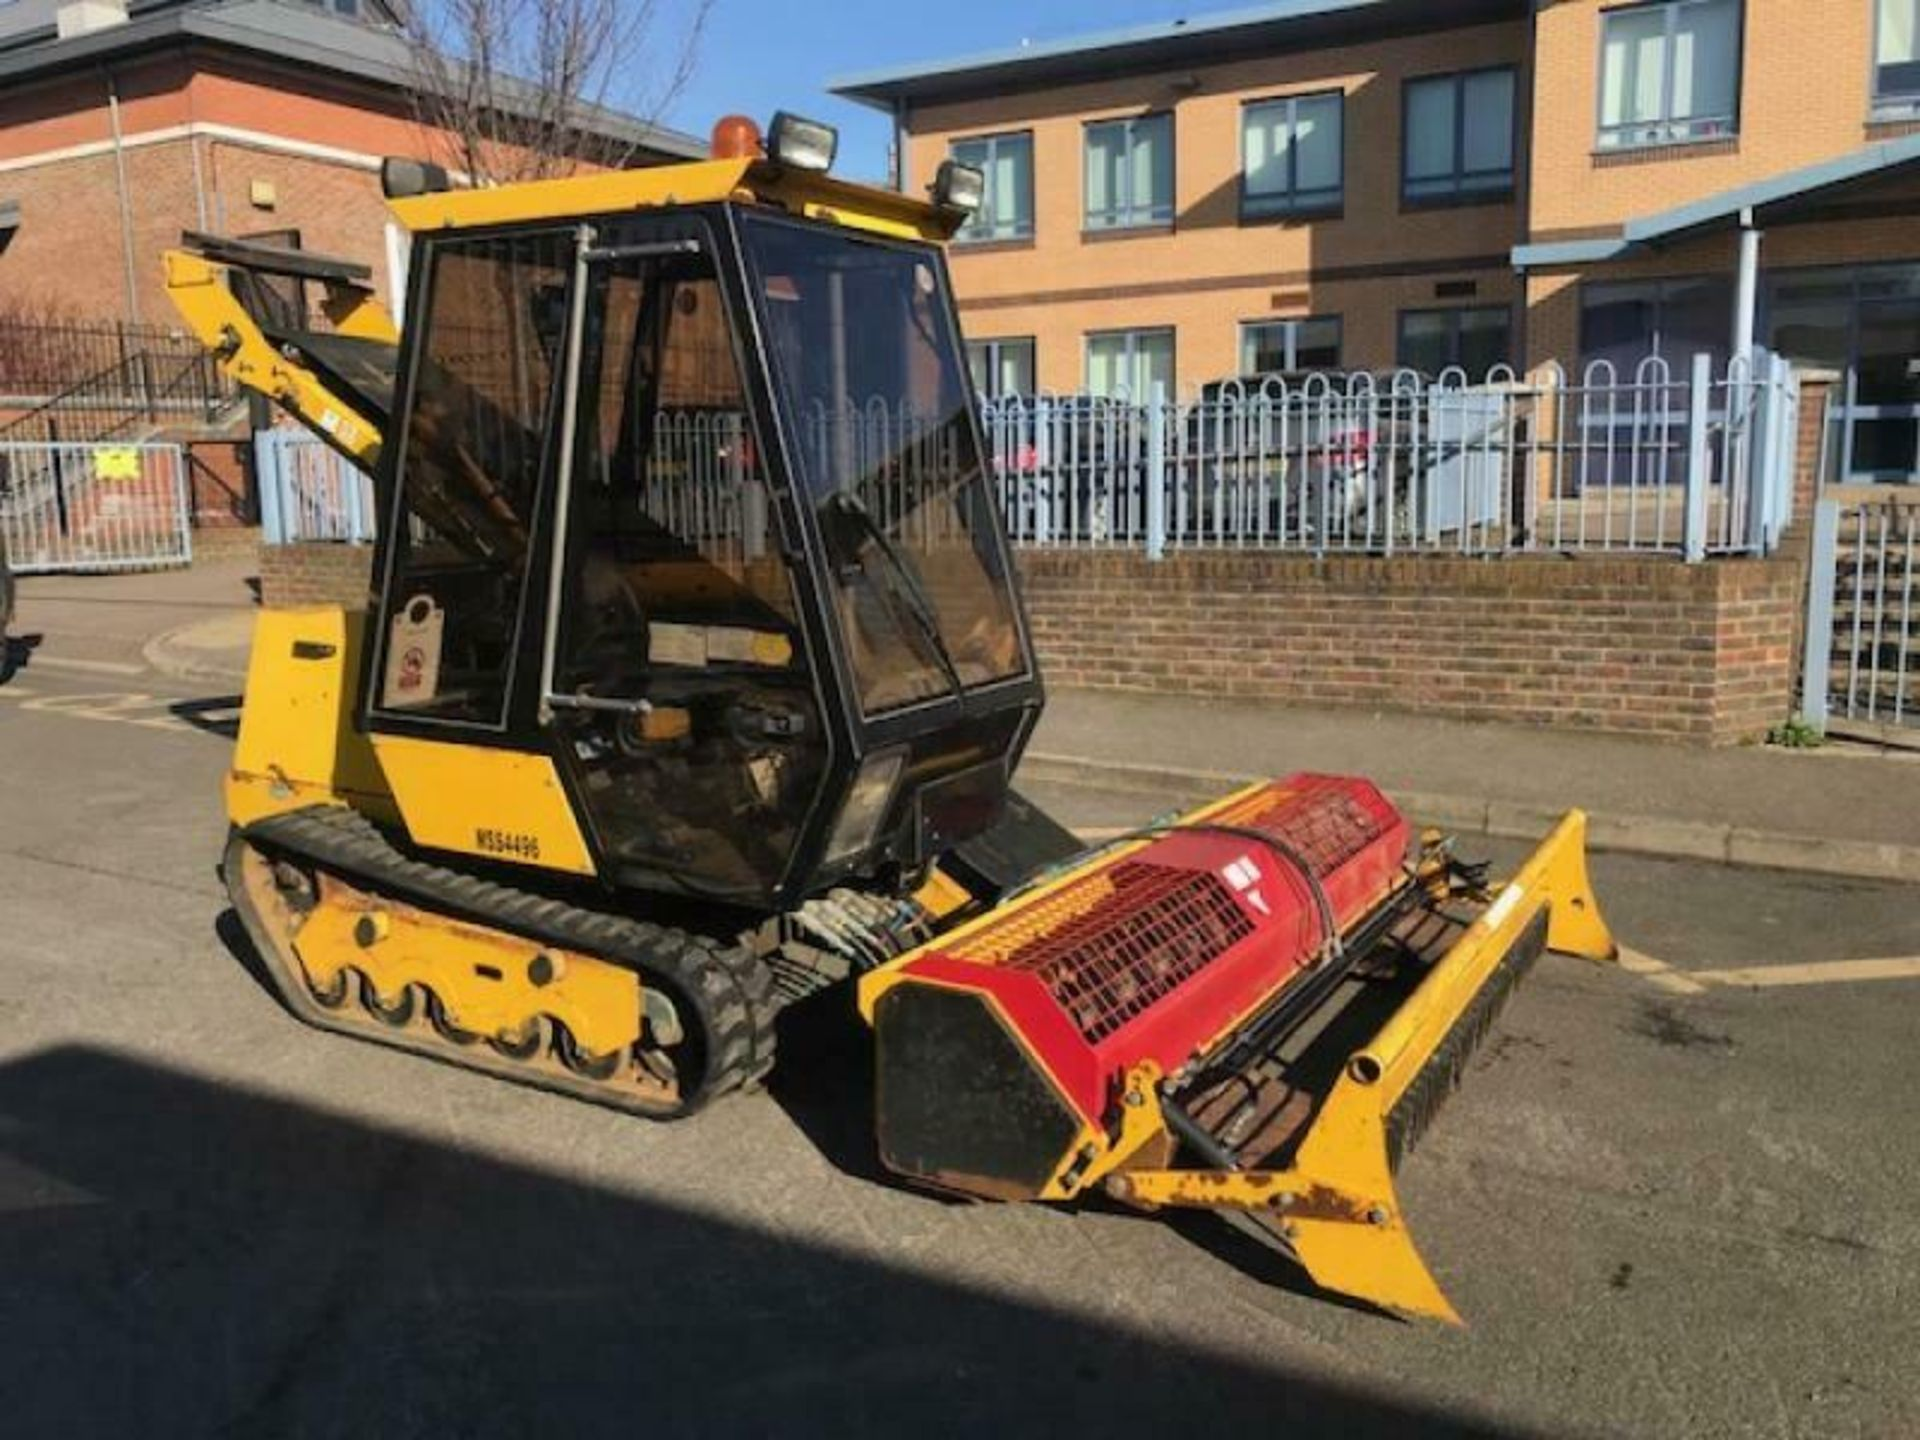 Lot 97 - 2012 MORRISH SK4 TRACKED SAND SKIMMER BEACH FILTER WATER TREATMENT, ONLY 300 HOURS *PLUS VAT*